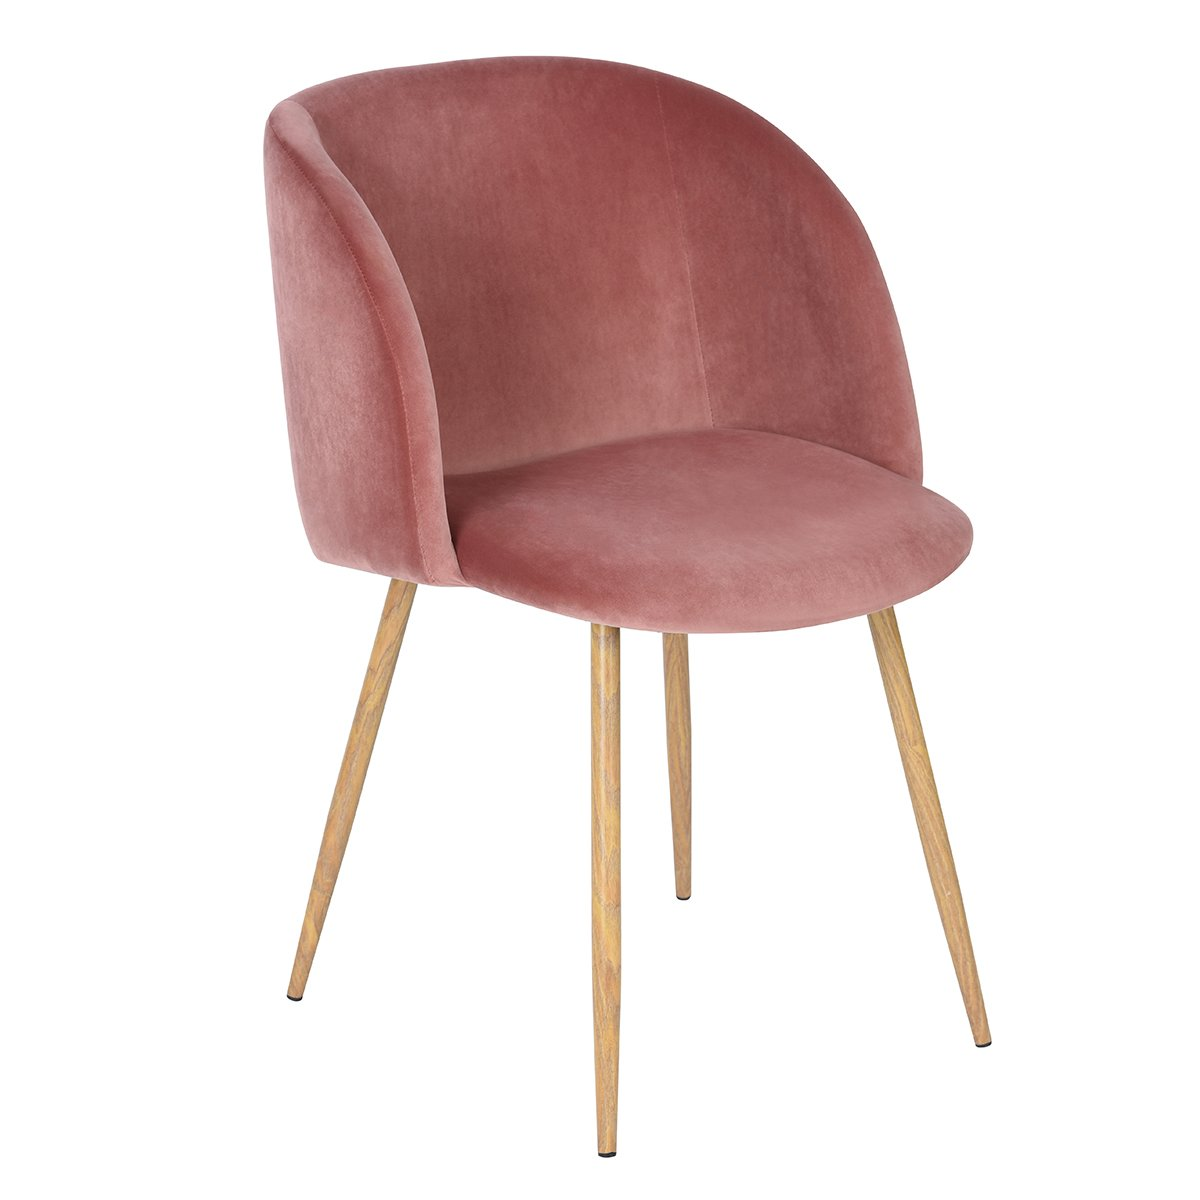 mid century living room velvet accent arm chairupholstered club chair with solid steel legs modern furniturerose pink - Arm Chairs Living Room